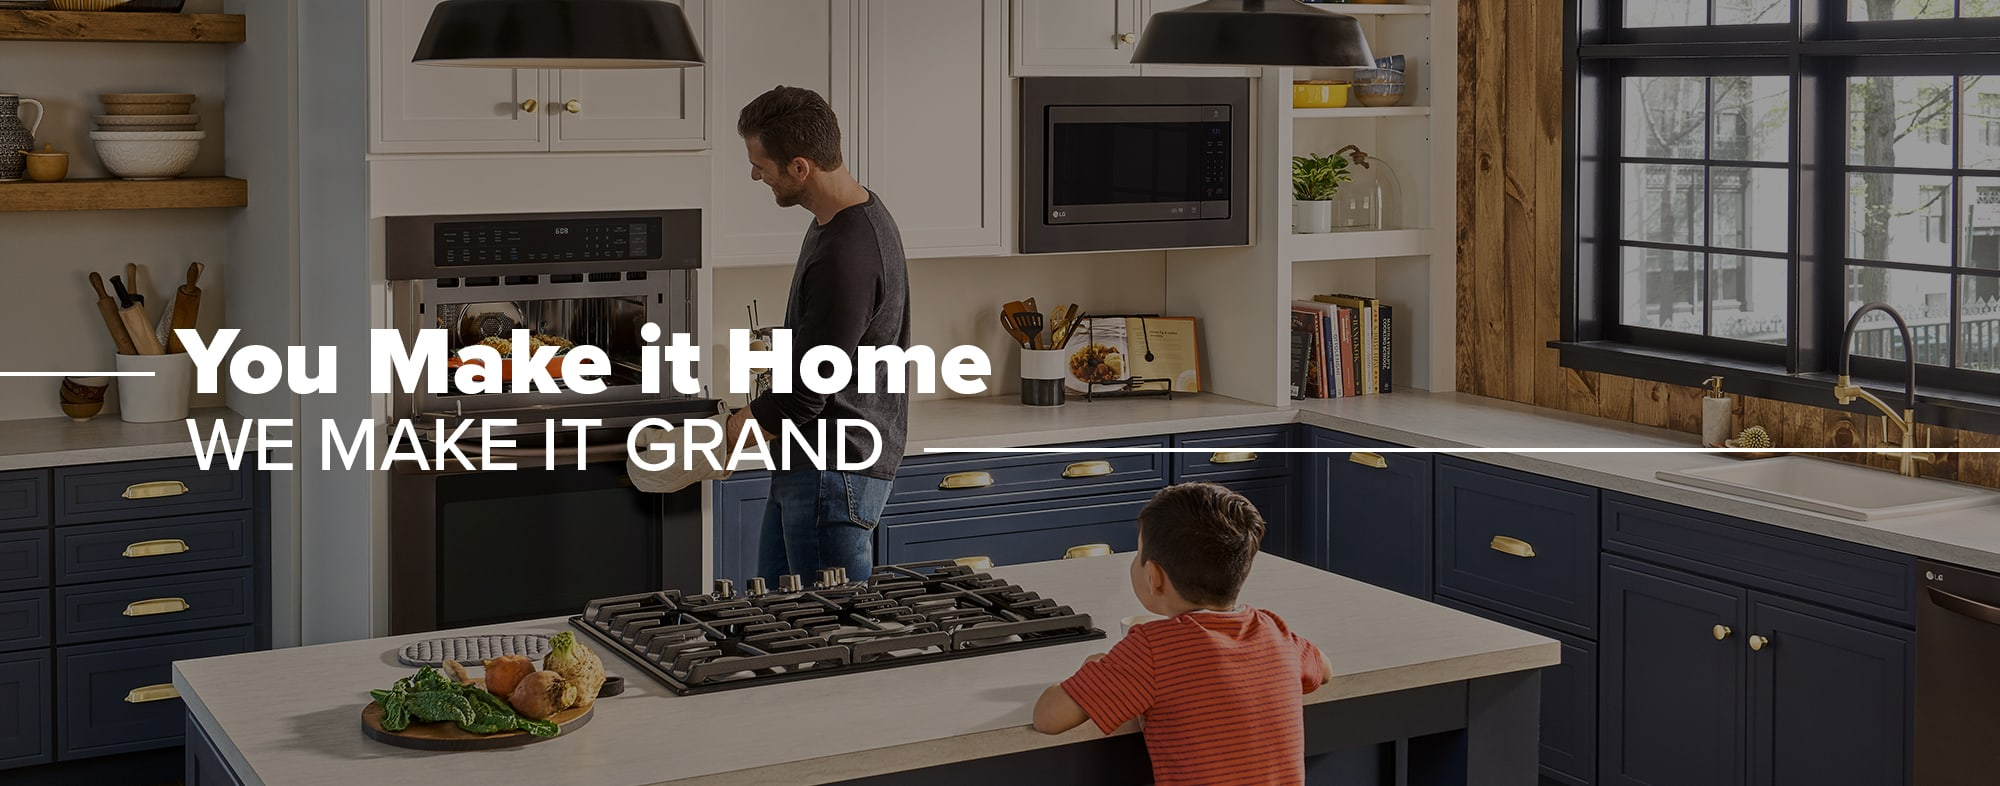 Grand Appliance Home Page | Grand Appliance and TV